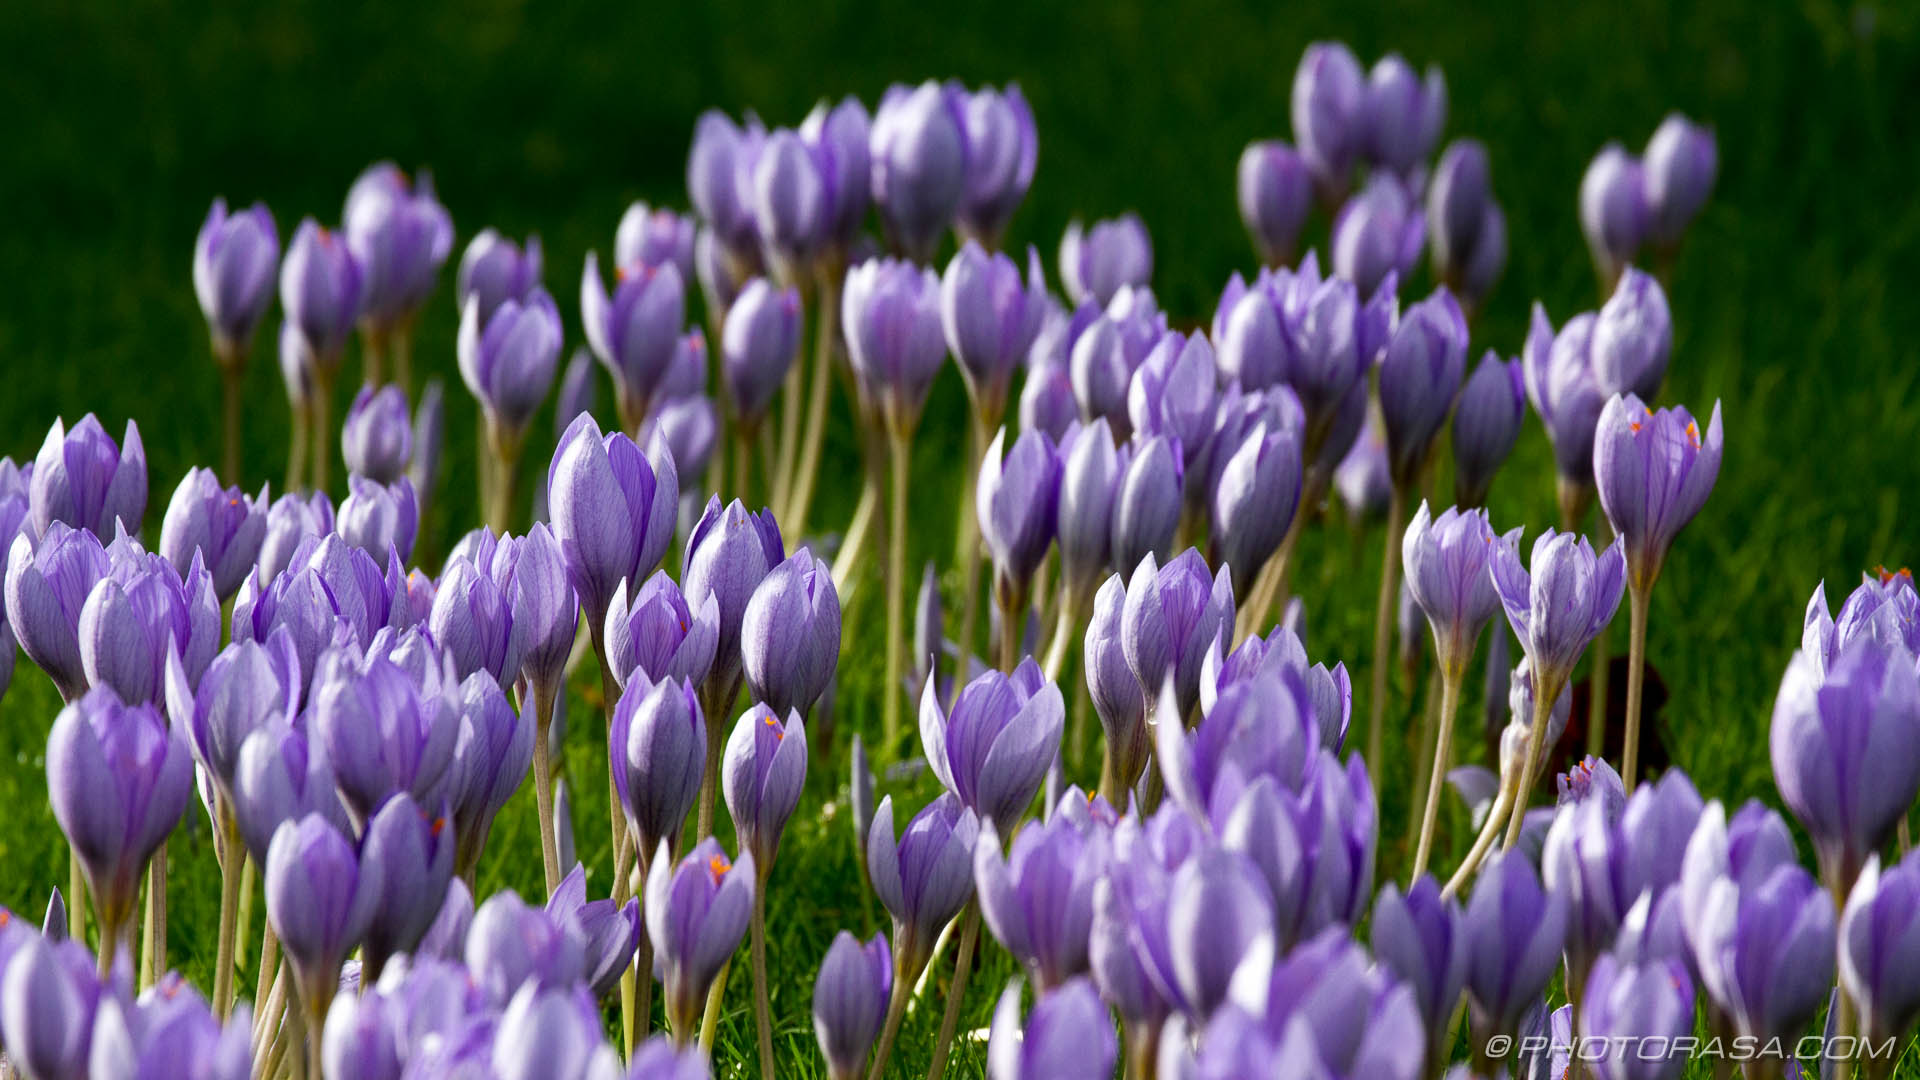 http://photorasa.com/purple-autumn-crocuses/broad-shot-of-crocuses/